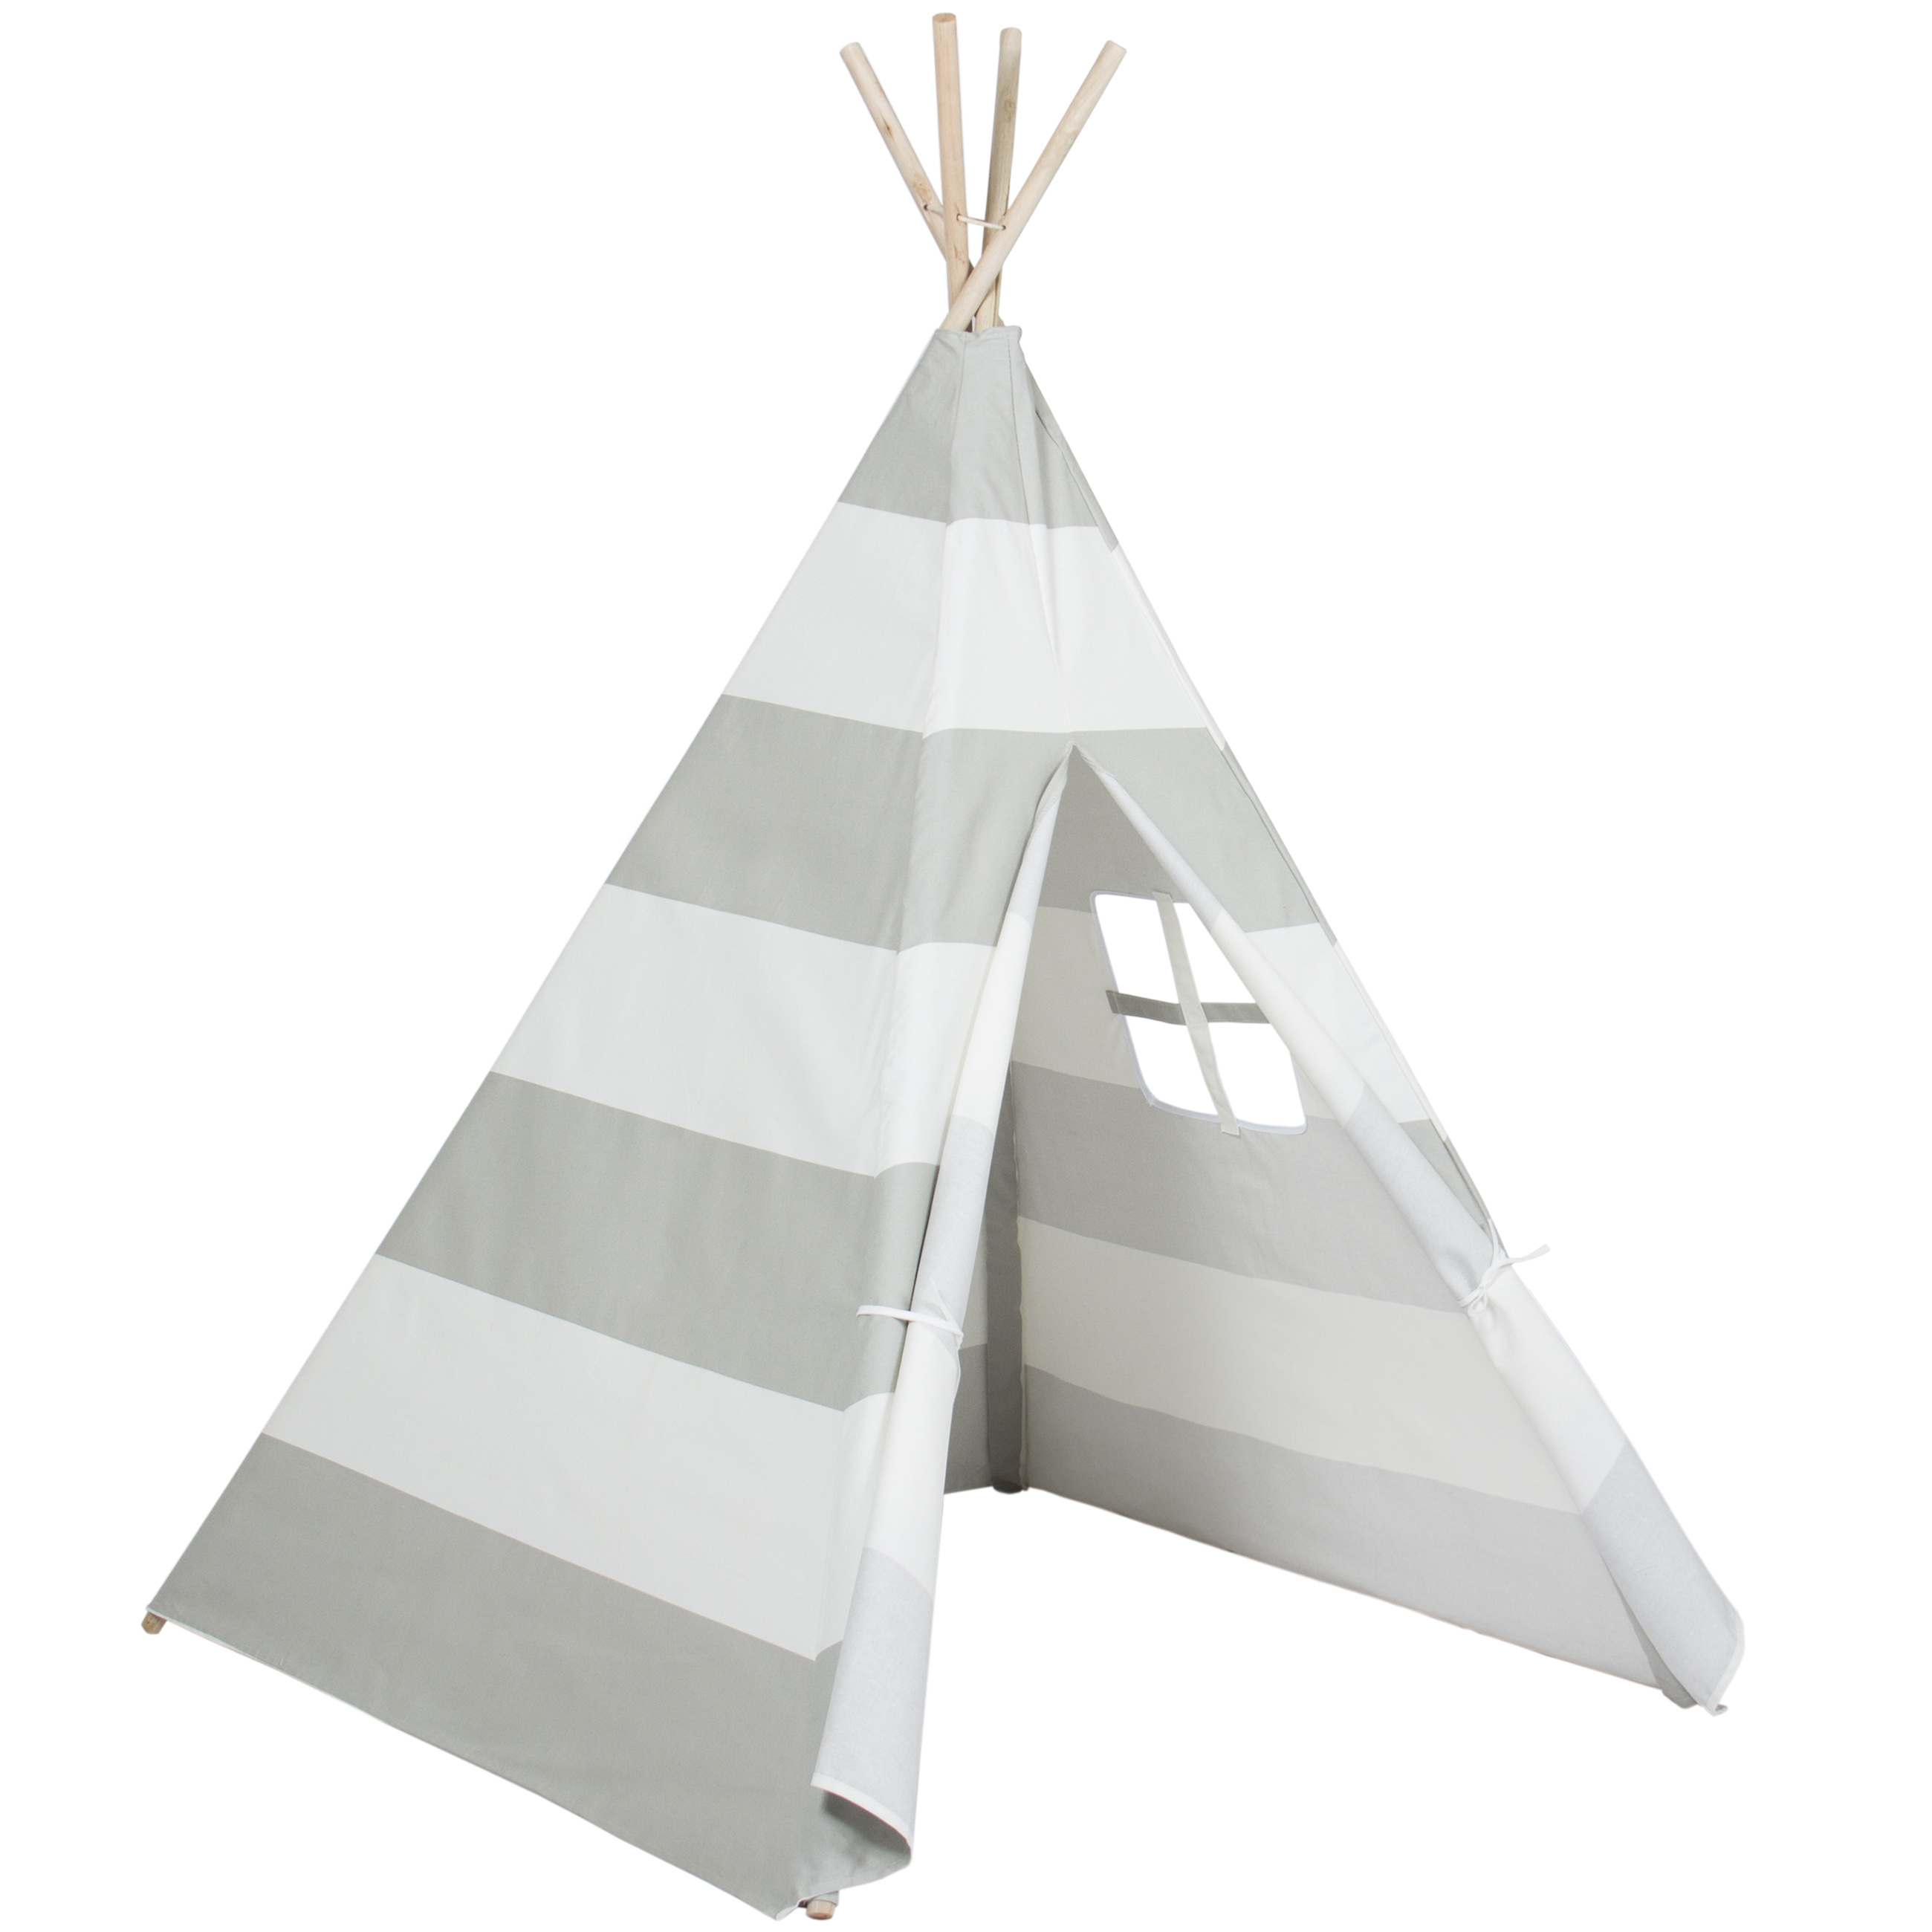 the latest 81ade 071fa Best Choice Products 6ft Kids Stripe Cotton Canvas Indian Teepee Playhouse  Sleeping Dome Play Tent w/ Carrying Bag, Mesh Window - White/Gray